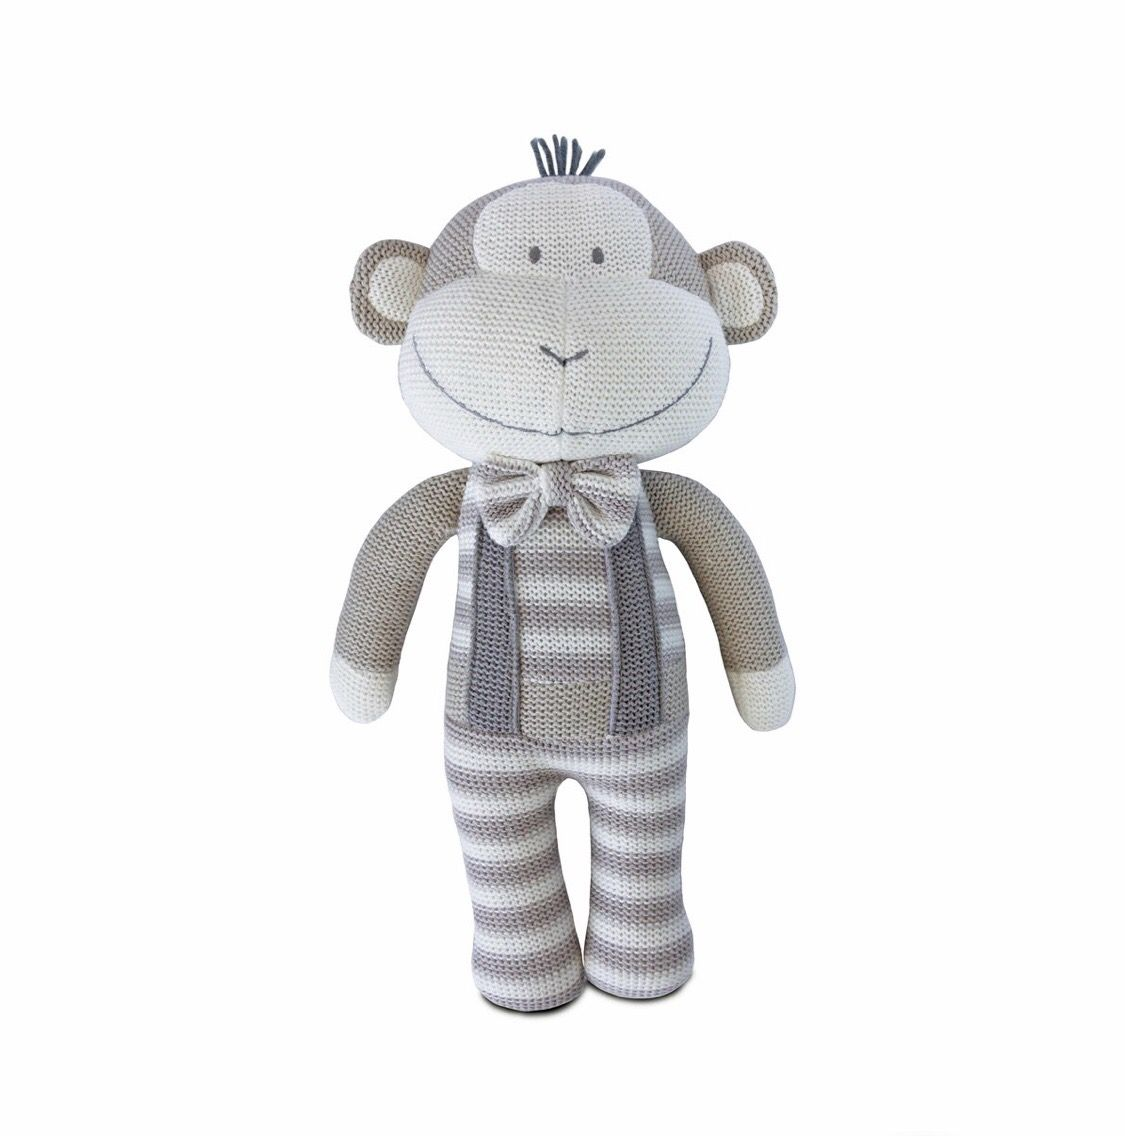 Living Textiles Knitted Toy Joe Monkey 37 Cm In 2020 Spielzeug